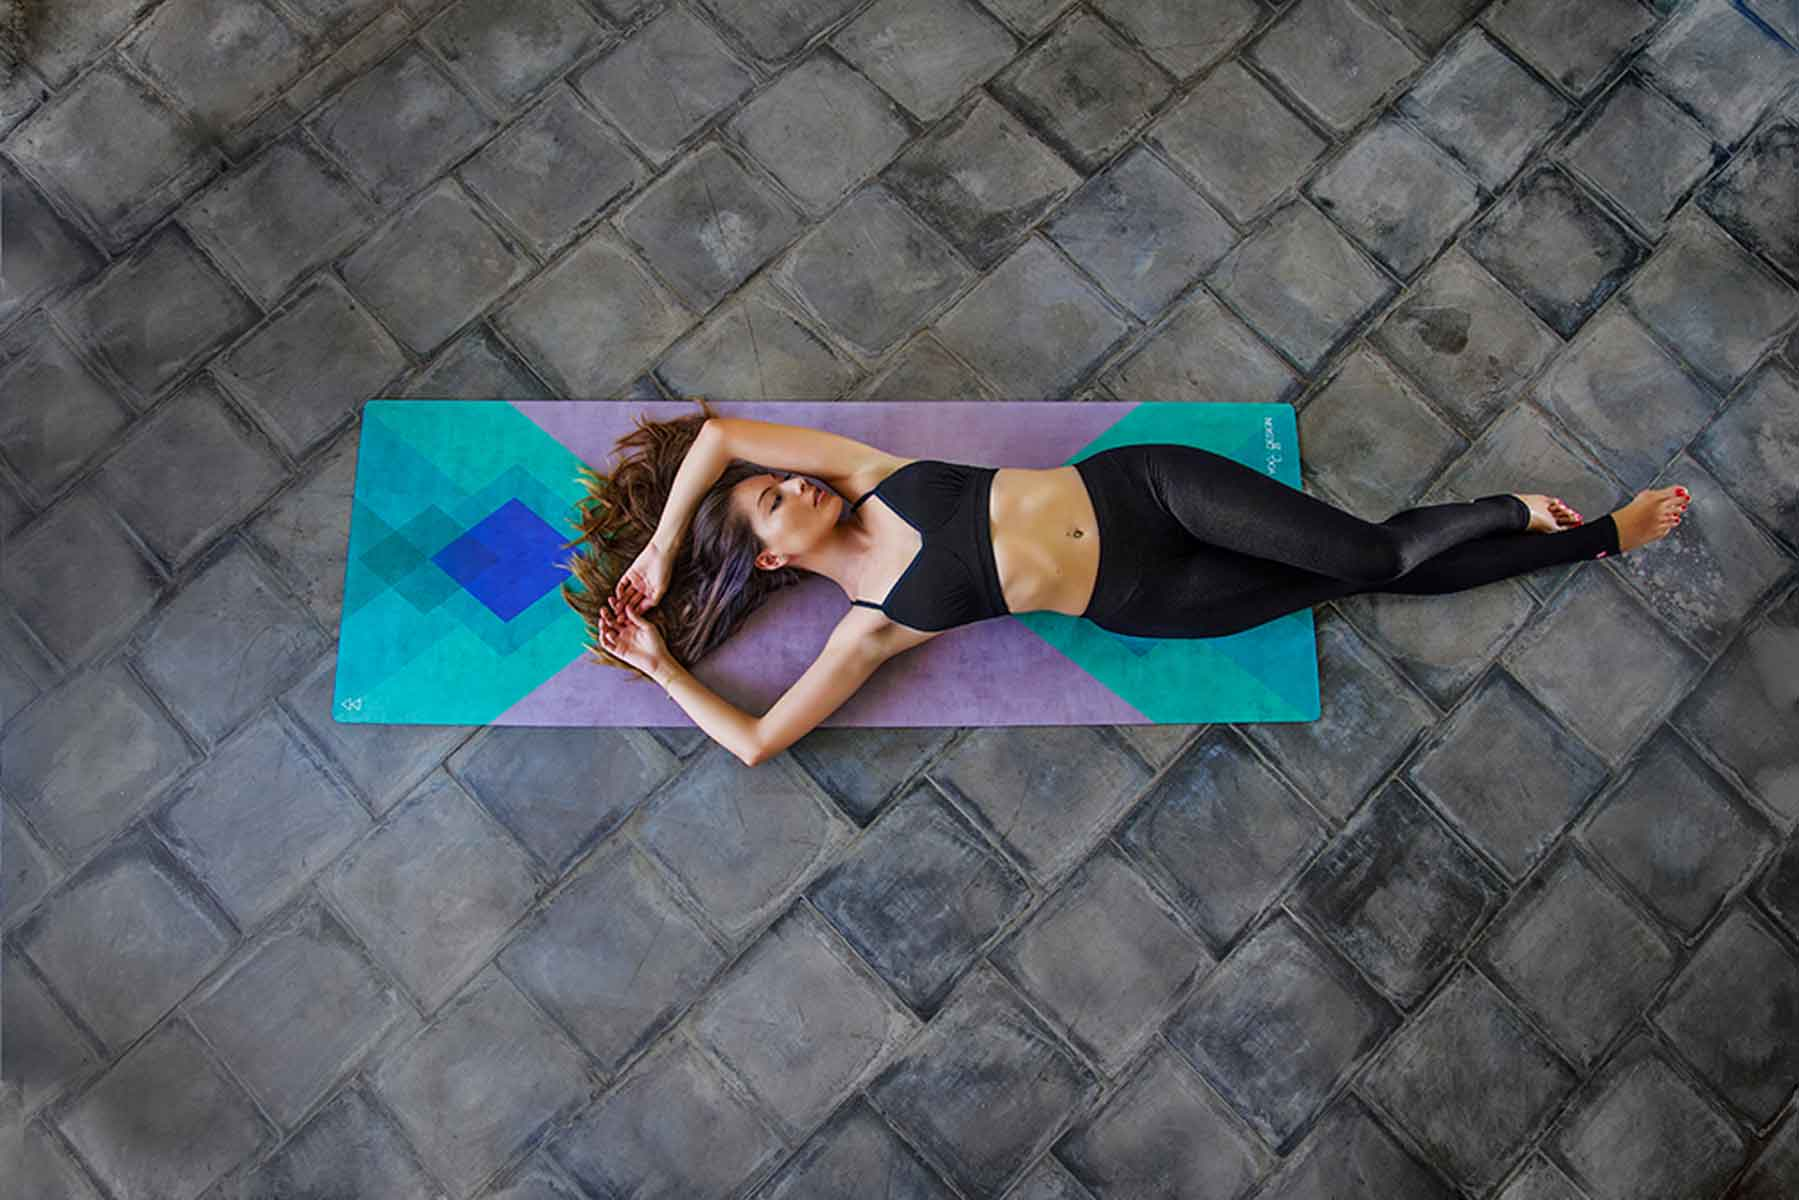 down yoga yogis shop hands markers travel original unique liforme alignment world mat of practical breaking intelligently system s guide shapes alignforme all features best the to ground